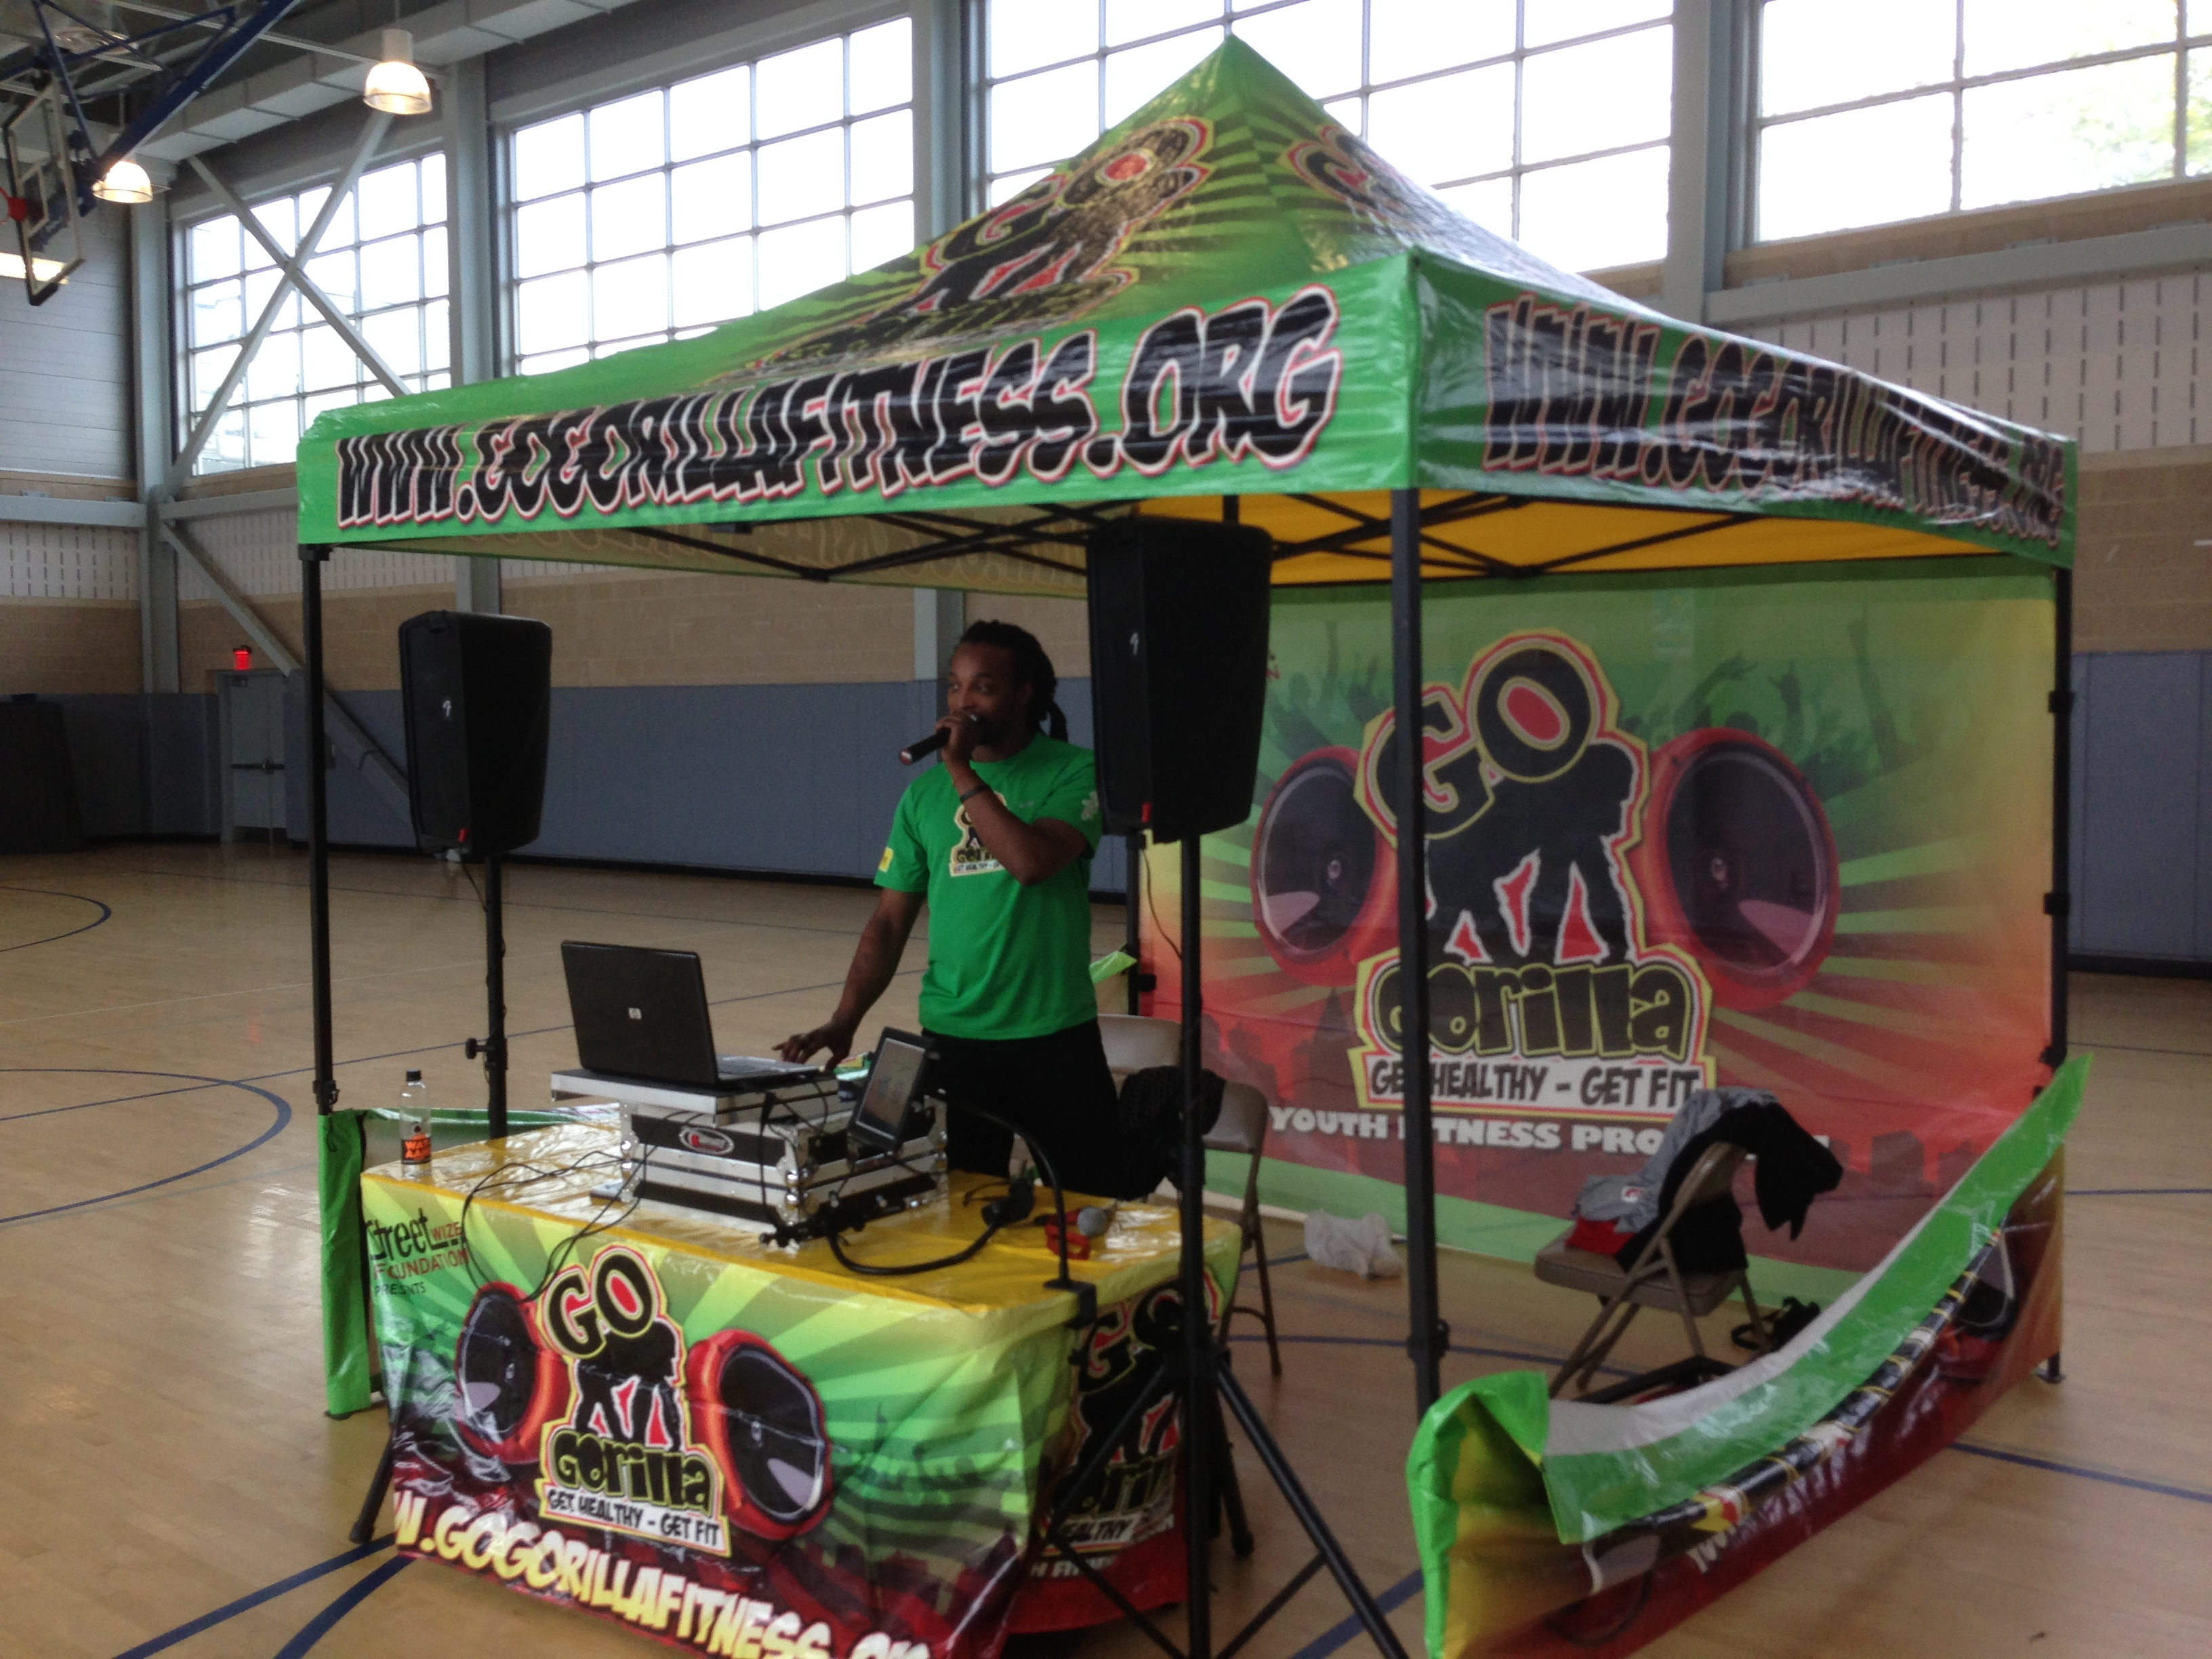 The Fit Kids Let's Move Youth Fitness Expo Goes Gorilla!!